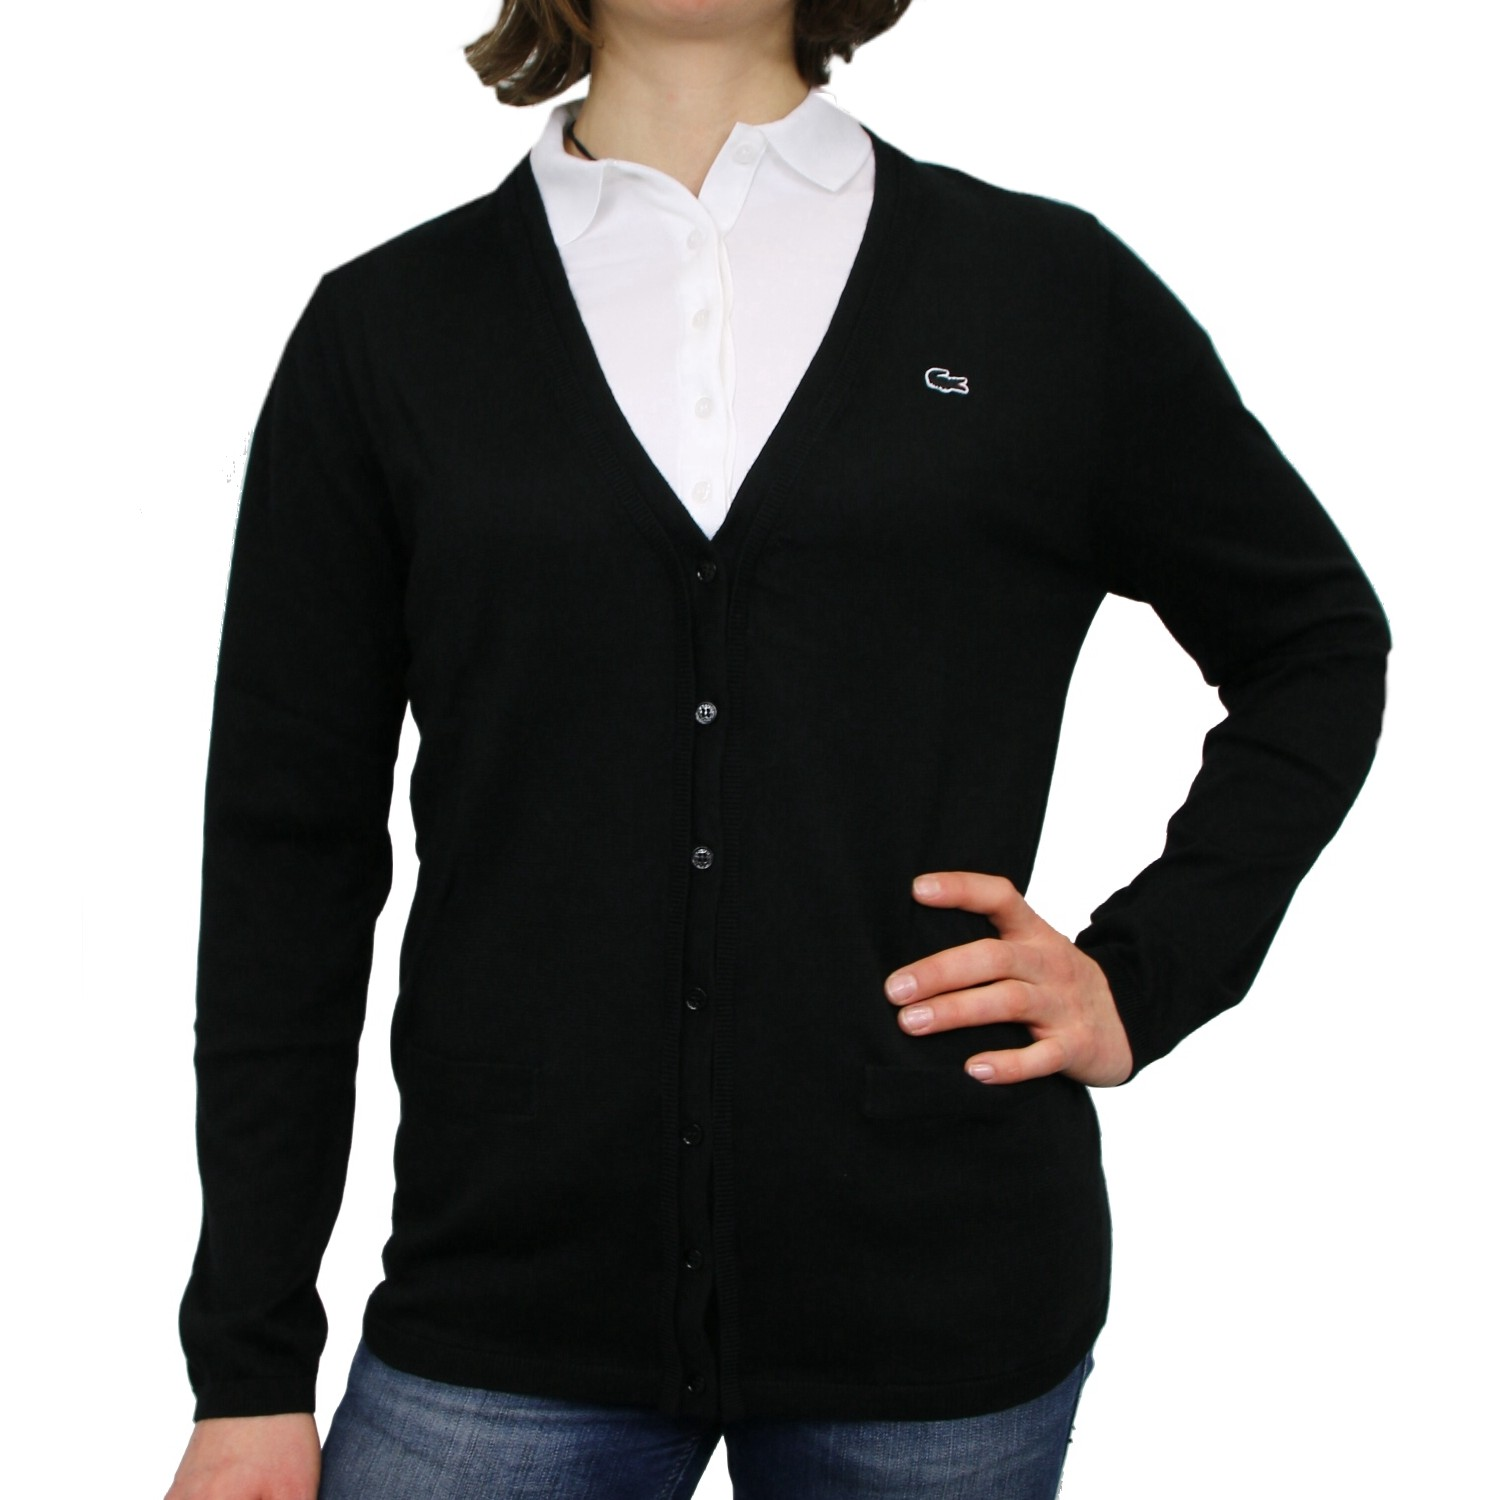 lacoste strickjacke damen cardigan wolle jacke diverse farben ebay. Black Bedroom Furniture Sets. Home Design Ideas